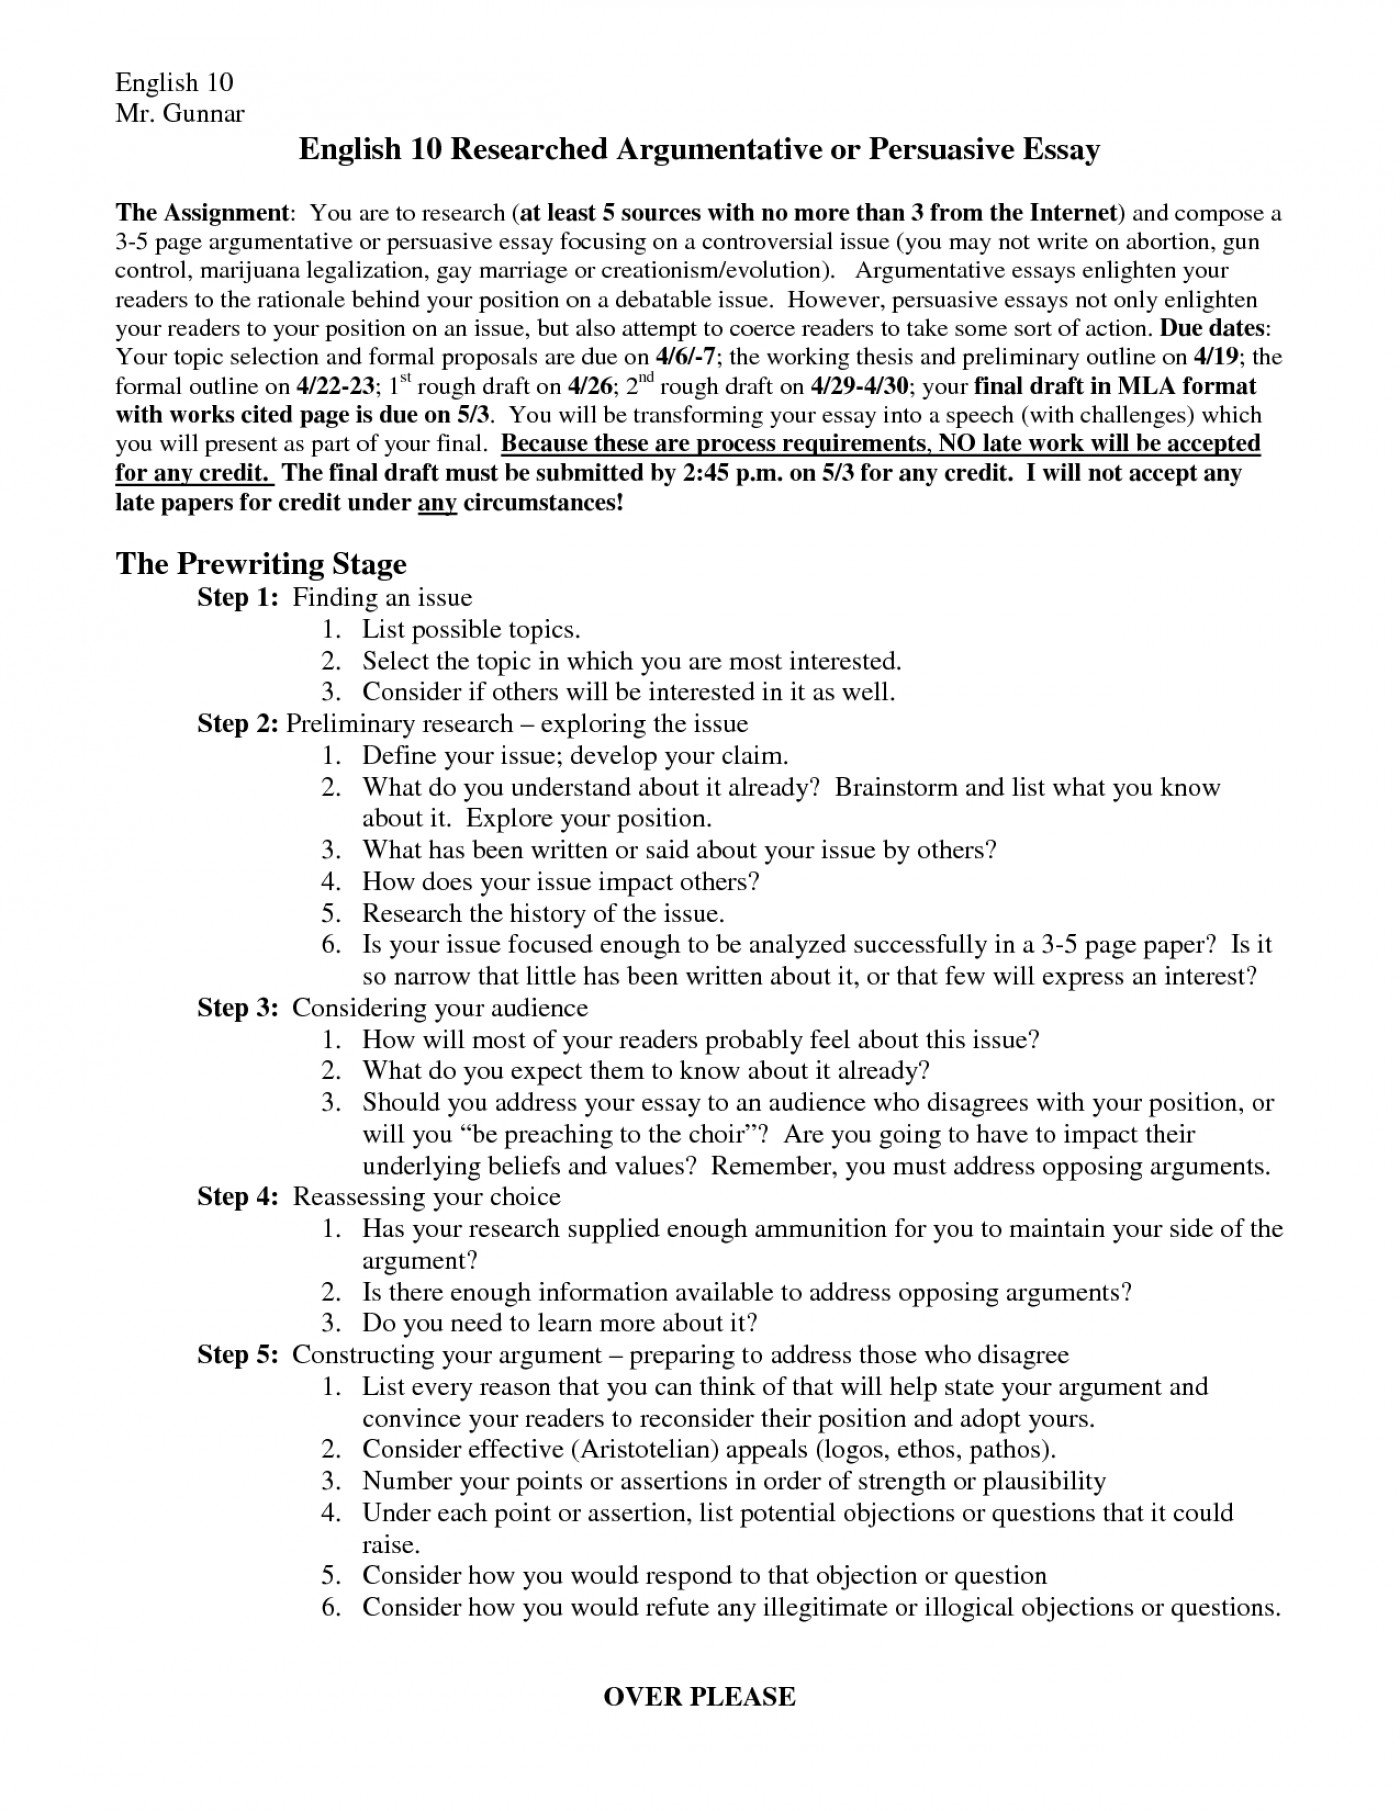 007 How To Do An Outline For Research Paper Example Mla Format Argumentative Essay 472291 Stupendous A Write Sample 1400